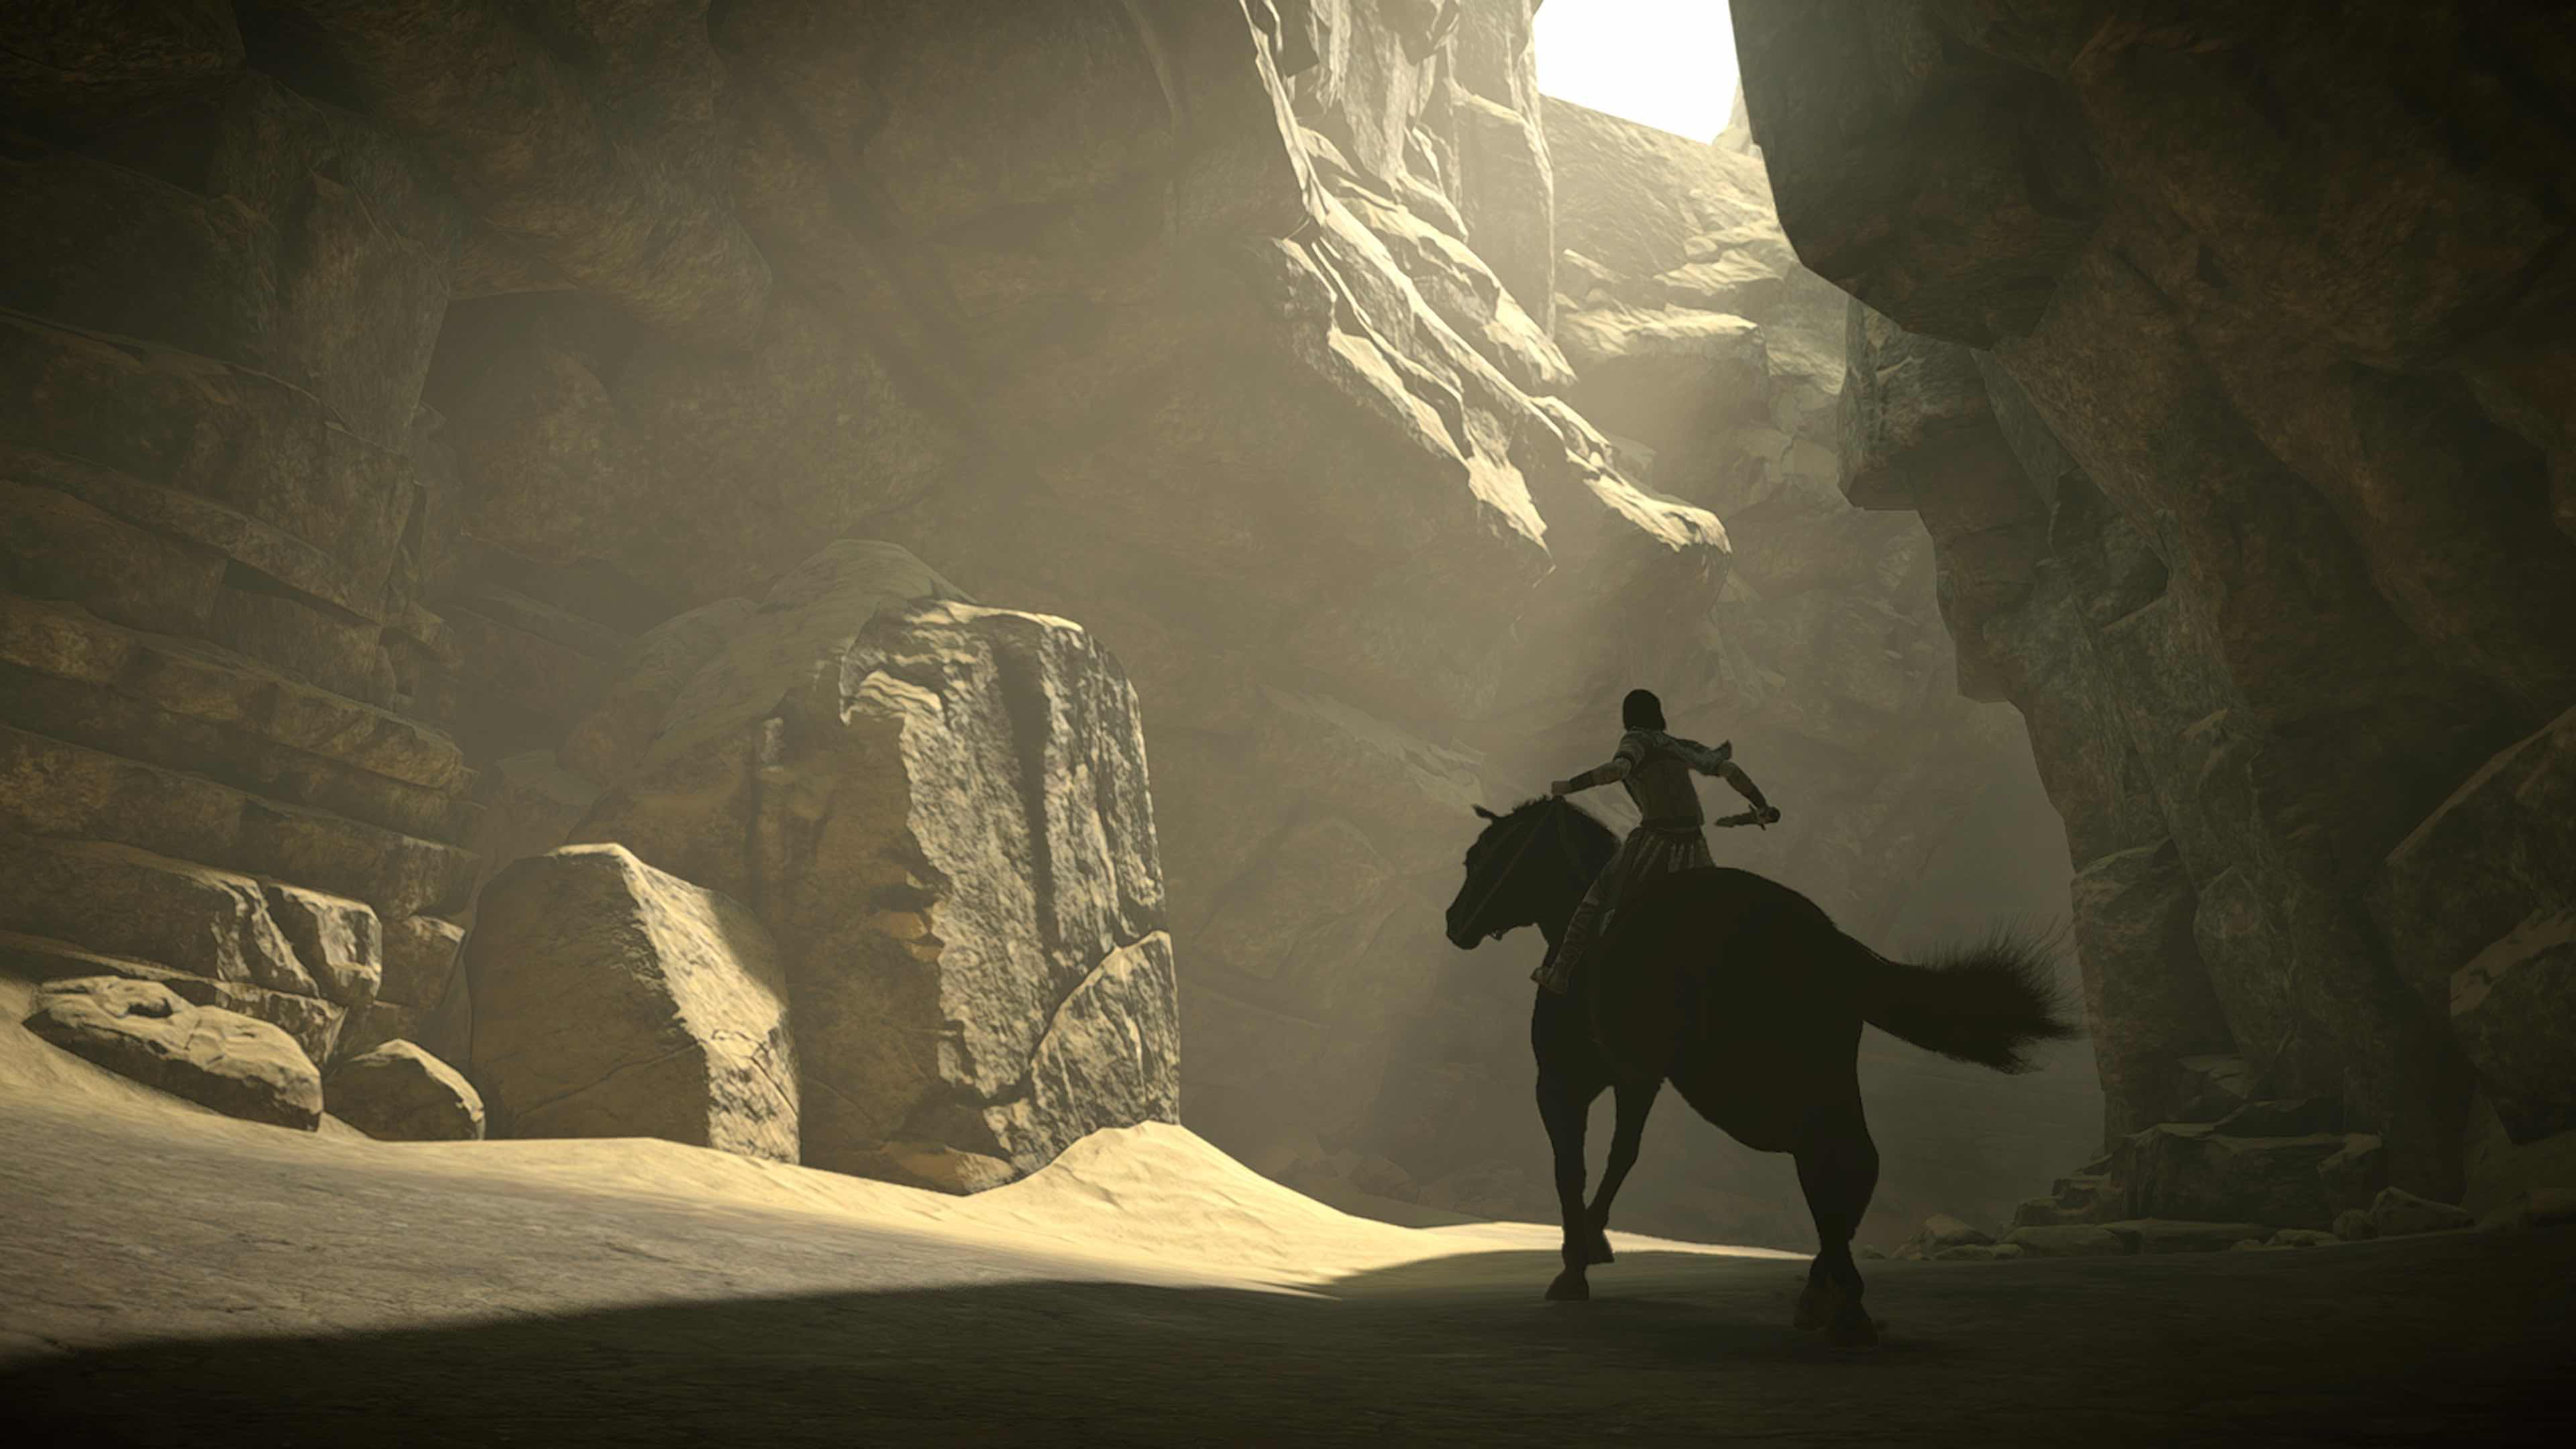 Shadow_of_the_Colossus_Coloso_10_1